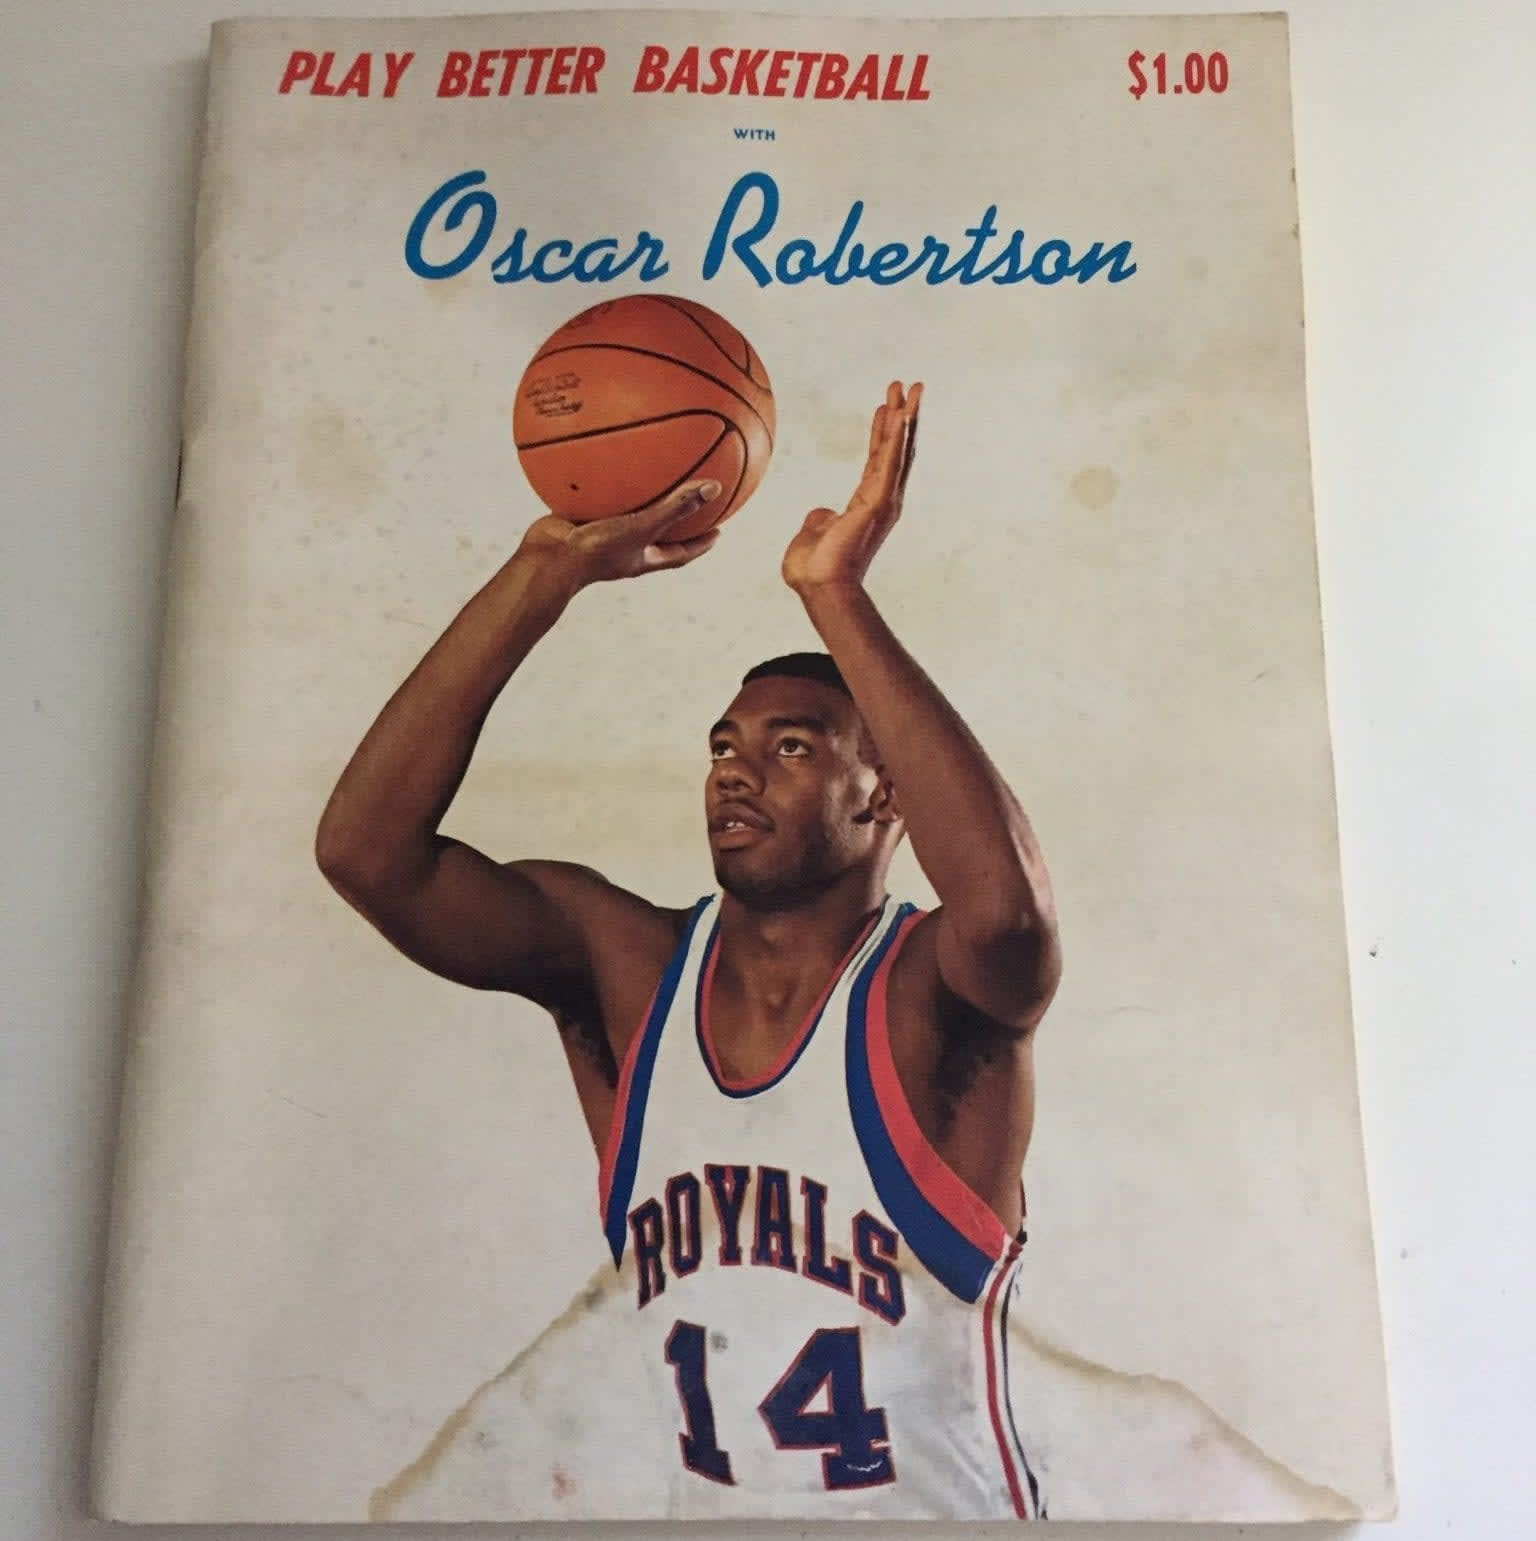 I found a book about playing better basketball by Oscar Robertson in my childhood room while going through some old things. Check it out!